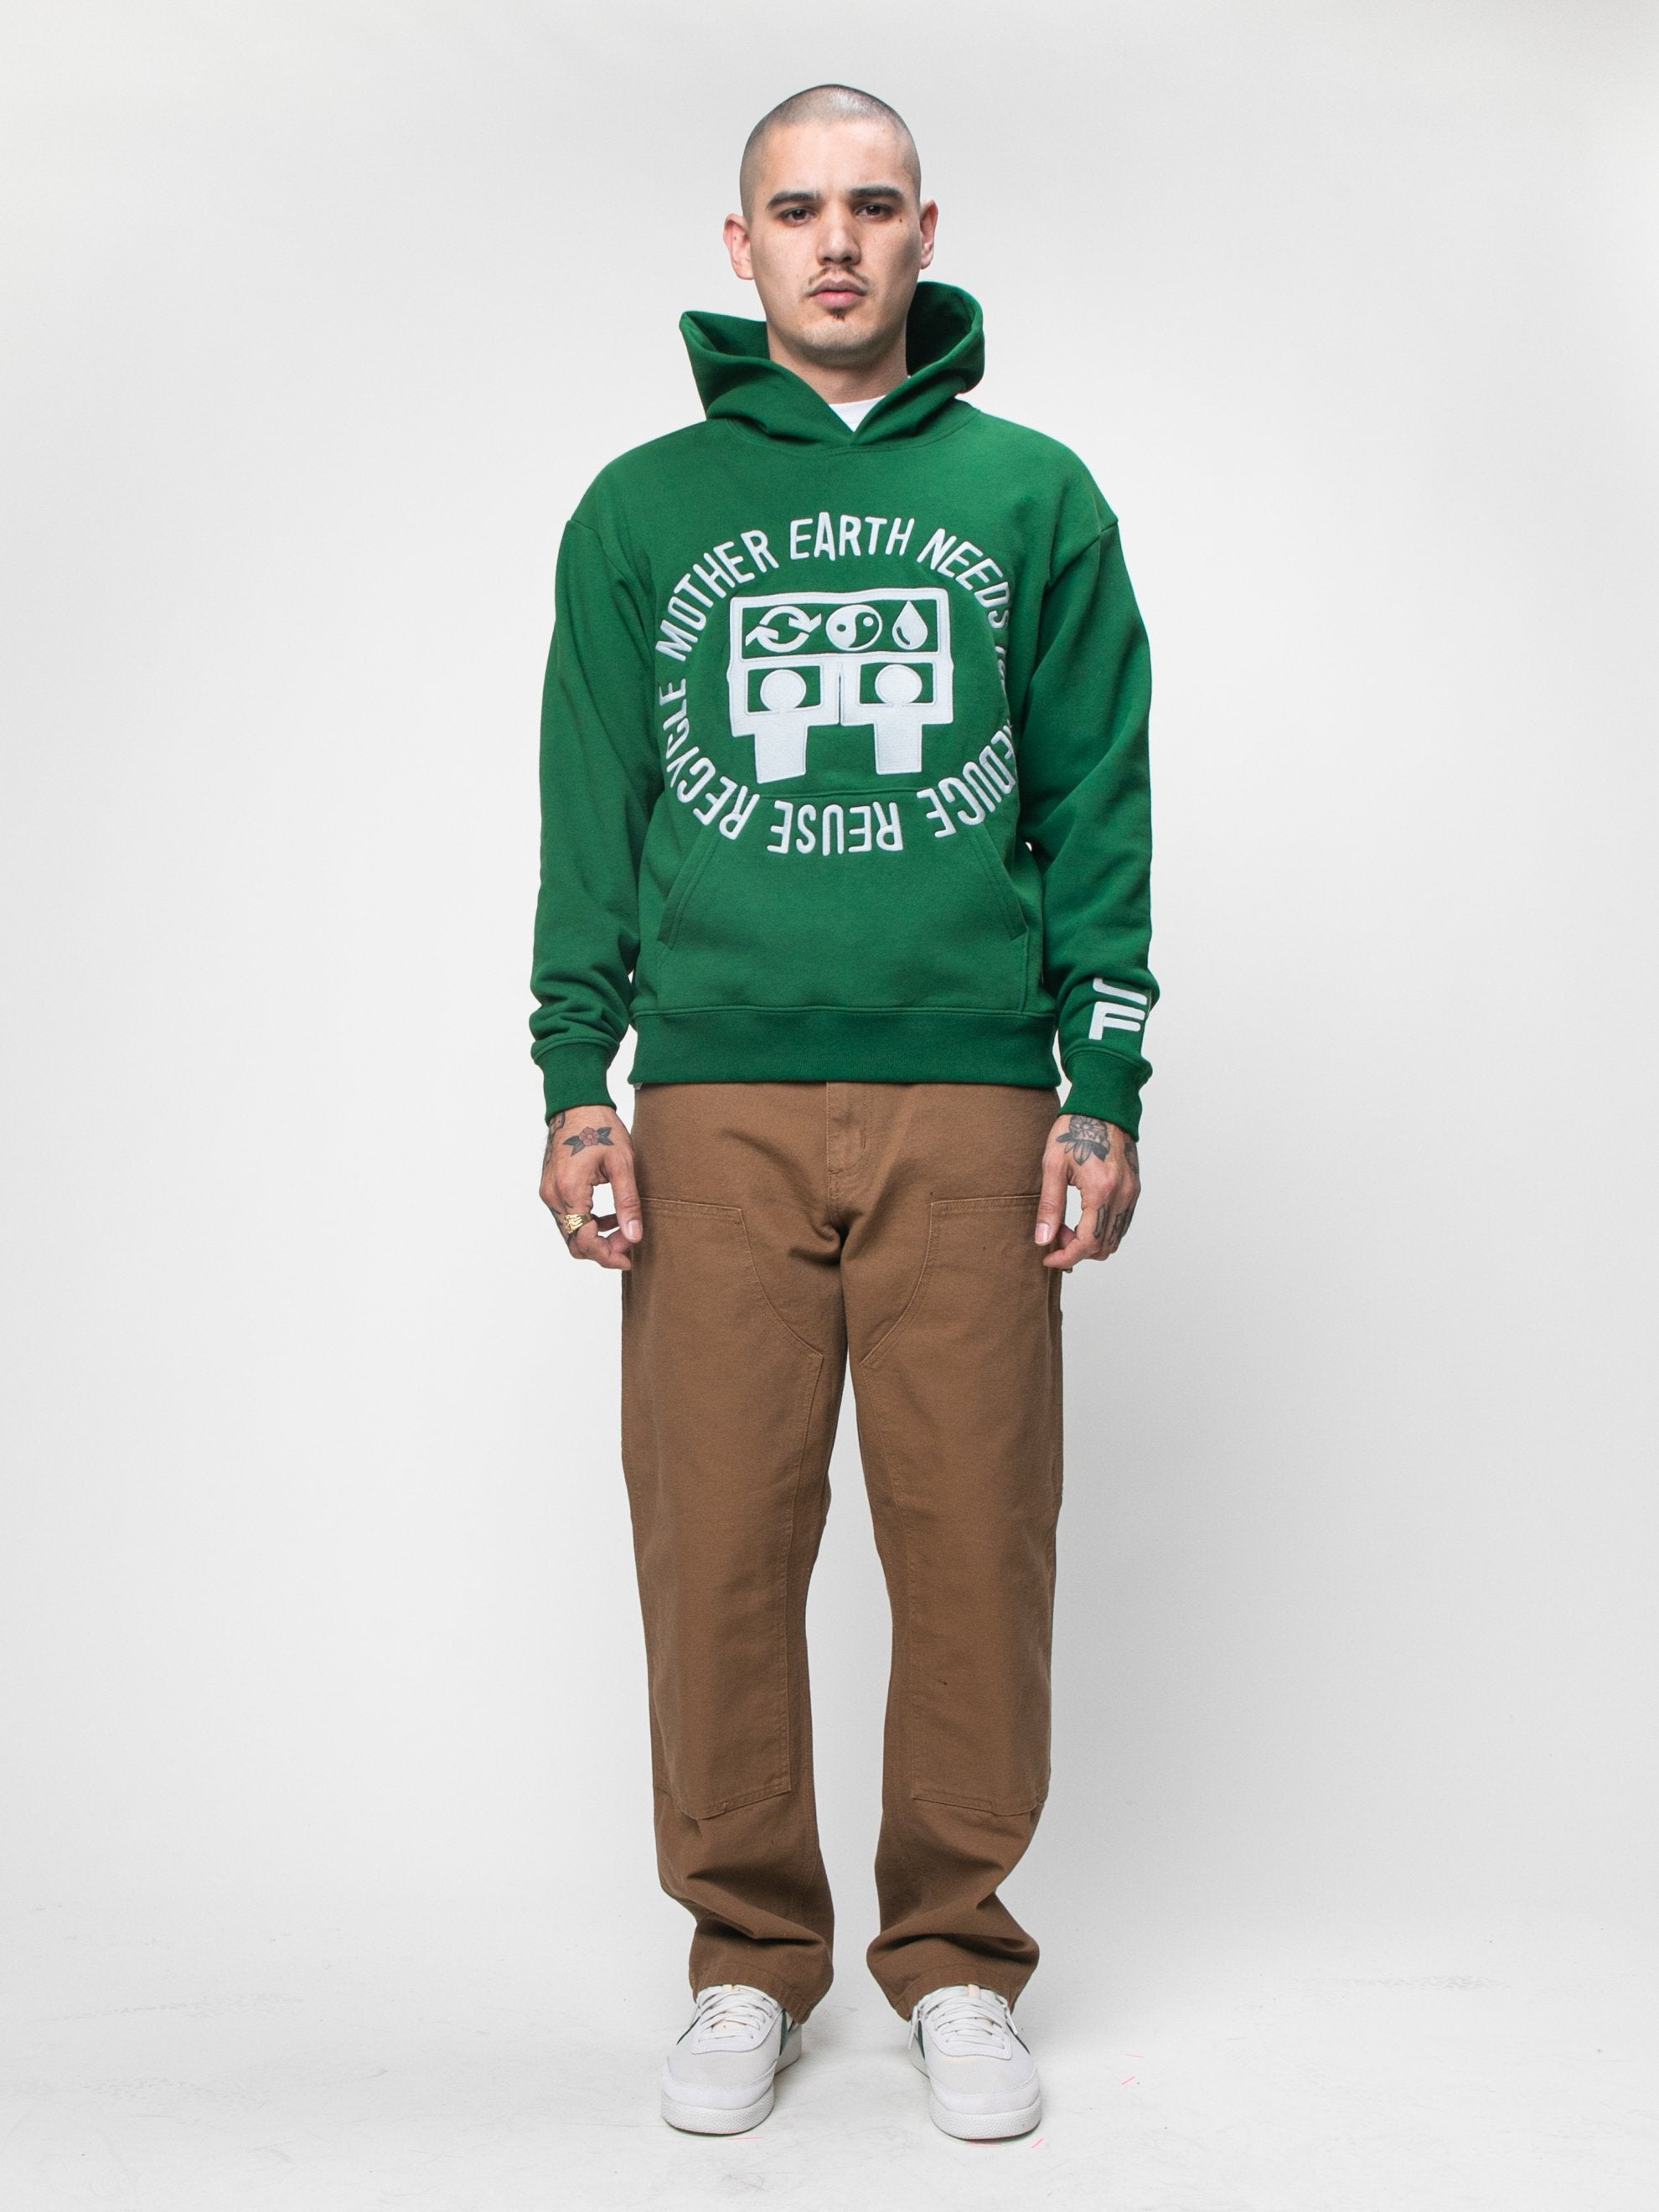 Green CPFM x Eco Mother Earth Hooded Sweatshirt 3